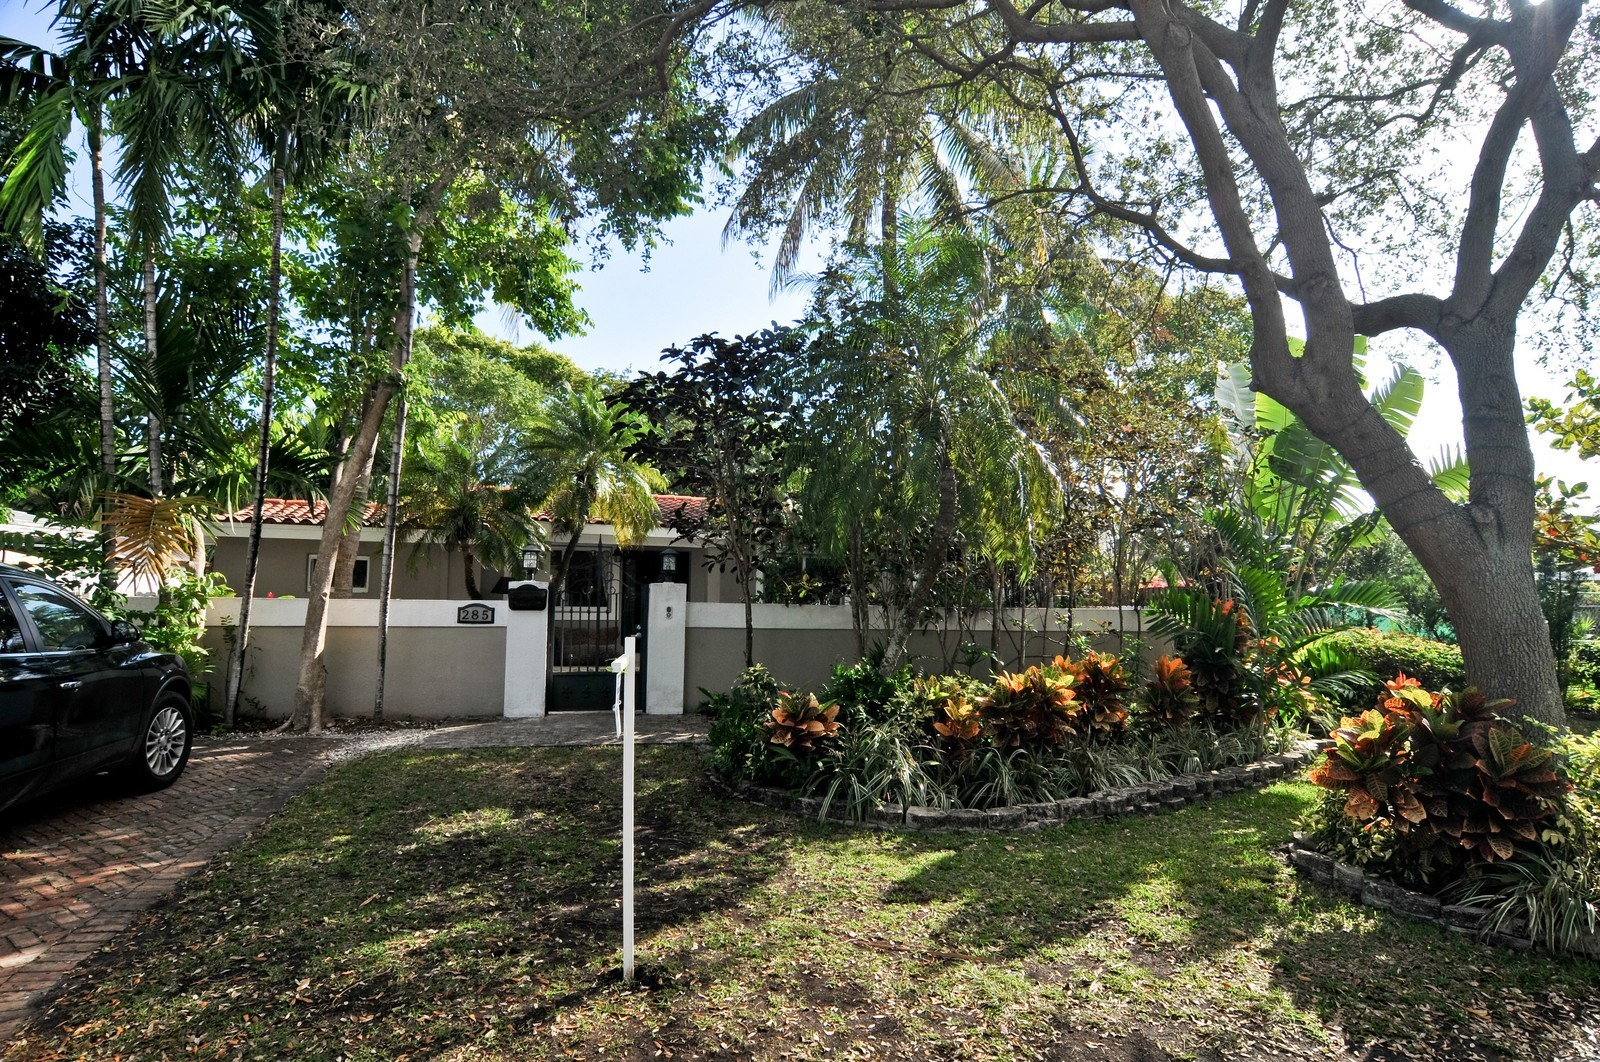 Real Estate Photography - 285 Glenrigde Rd, Key Biscayne, FL, 33149 - Front View